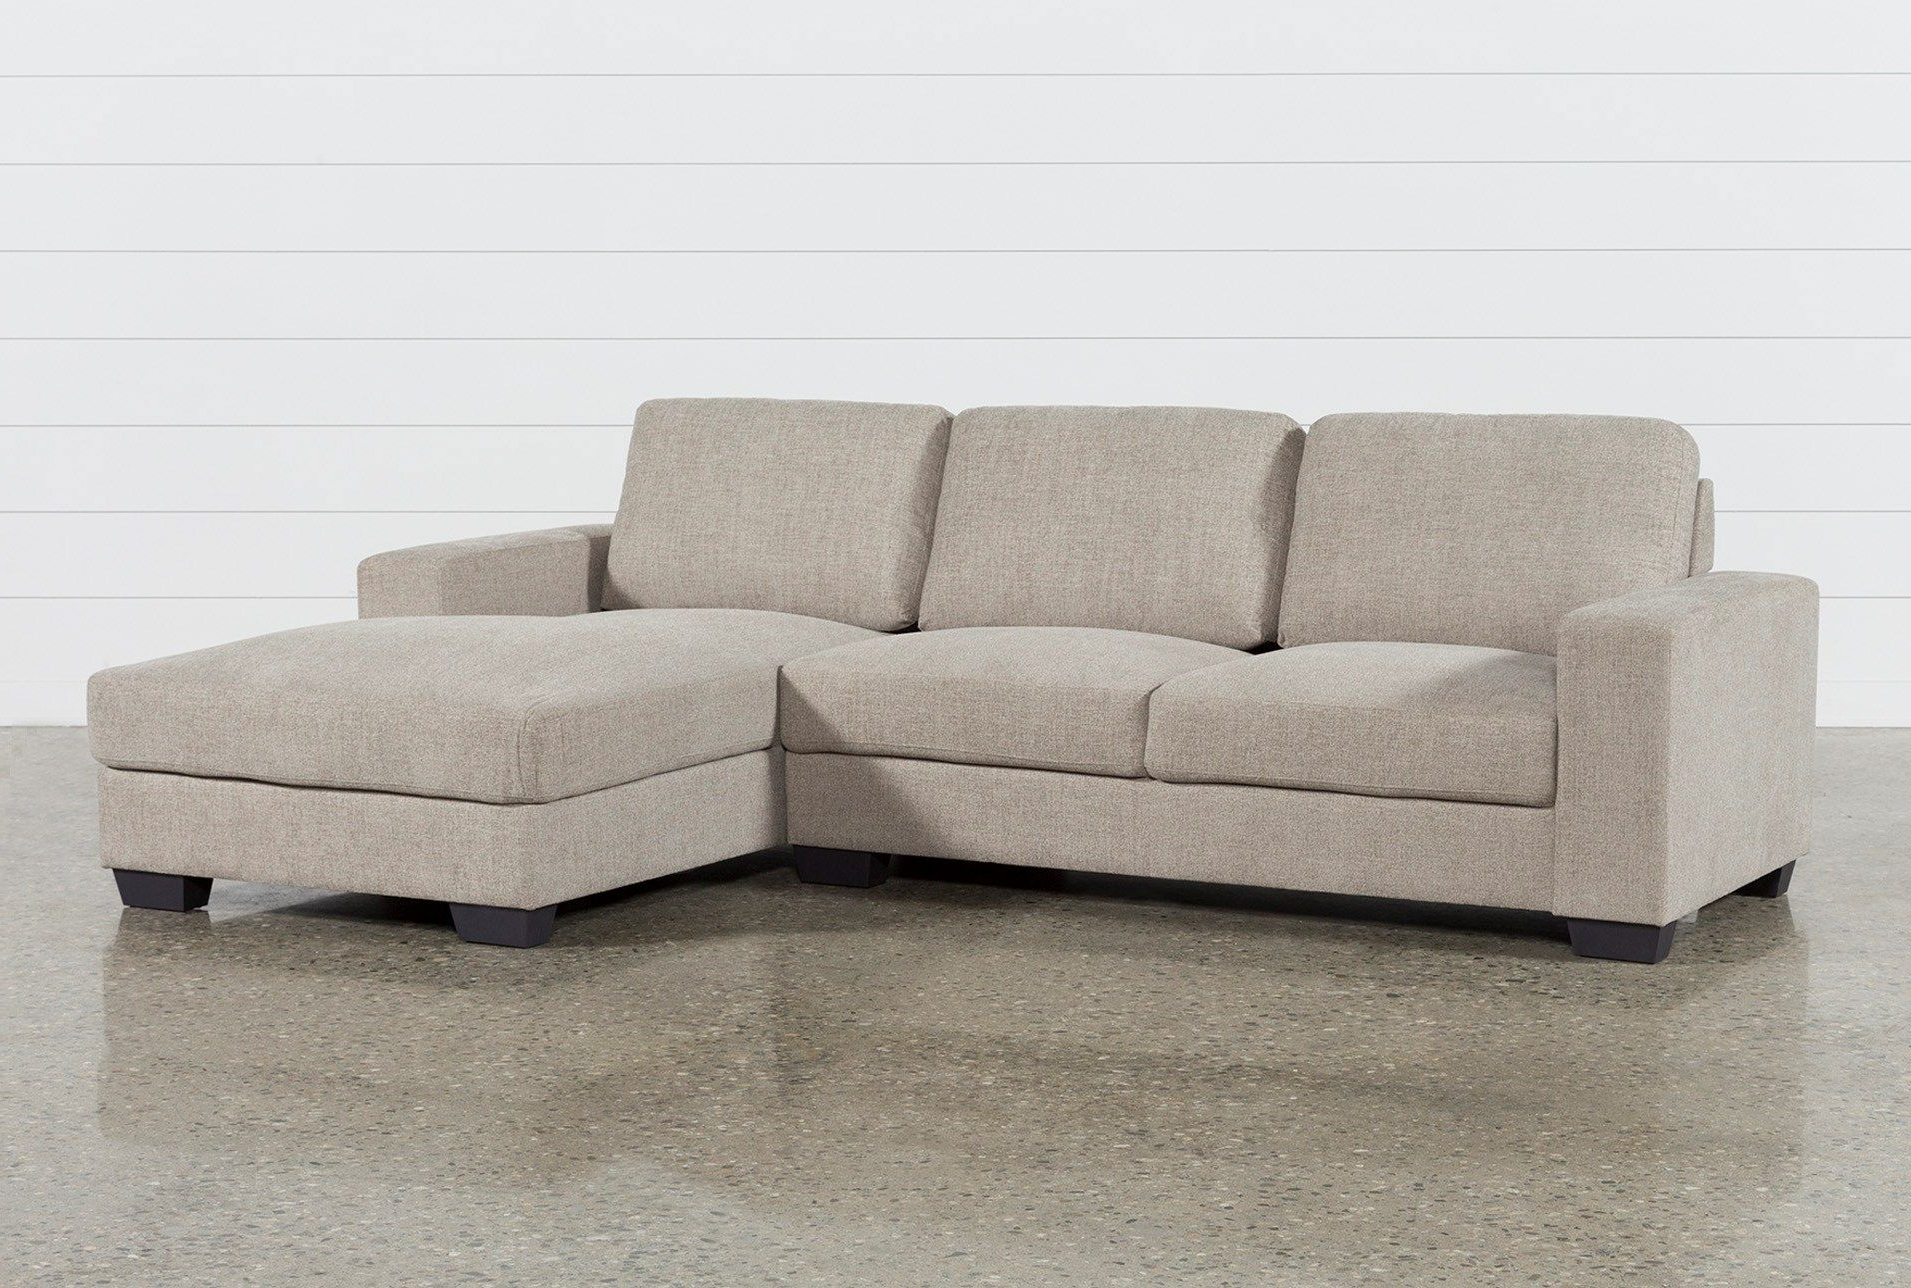 Jobs Oat 2 Piece Sectional With Right Facing Chaise In 2018 Regarding Recent Arrowmask 2 Piece Sectionals With Sleeper & Right Facing Chaise (Gallery 2 of 20)